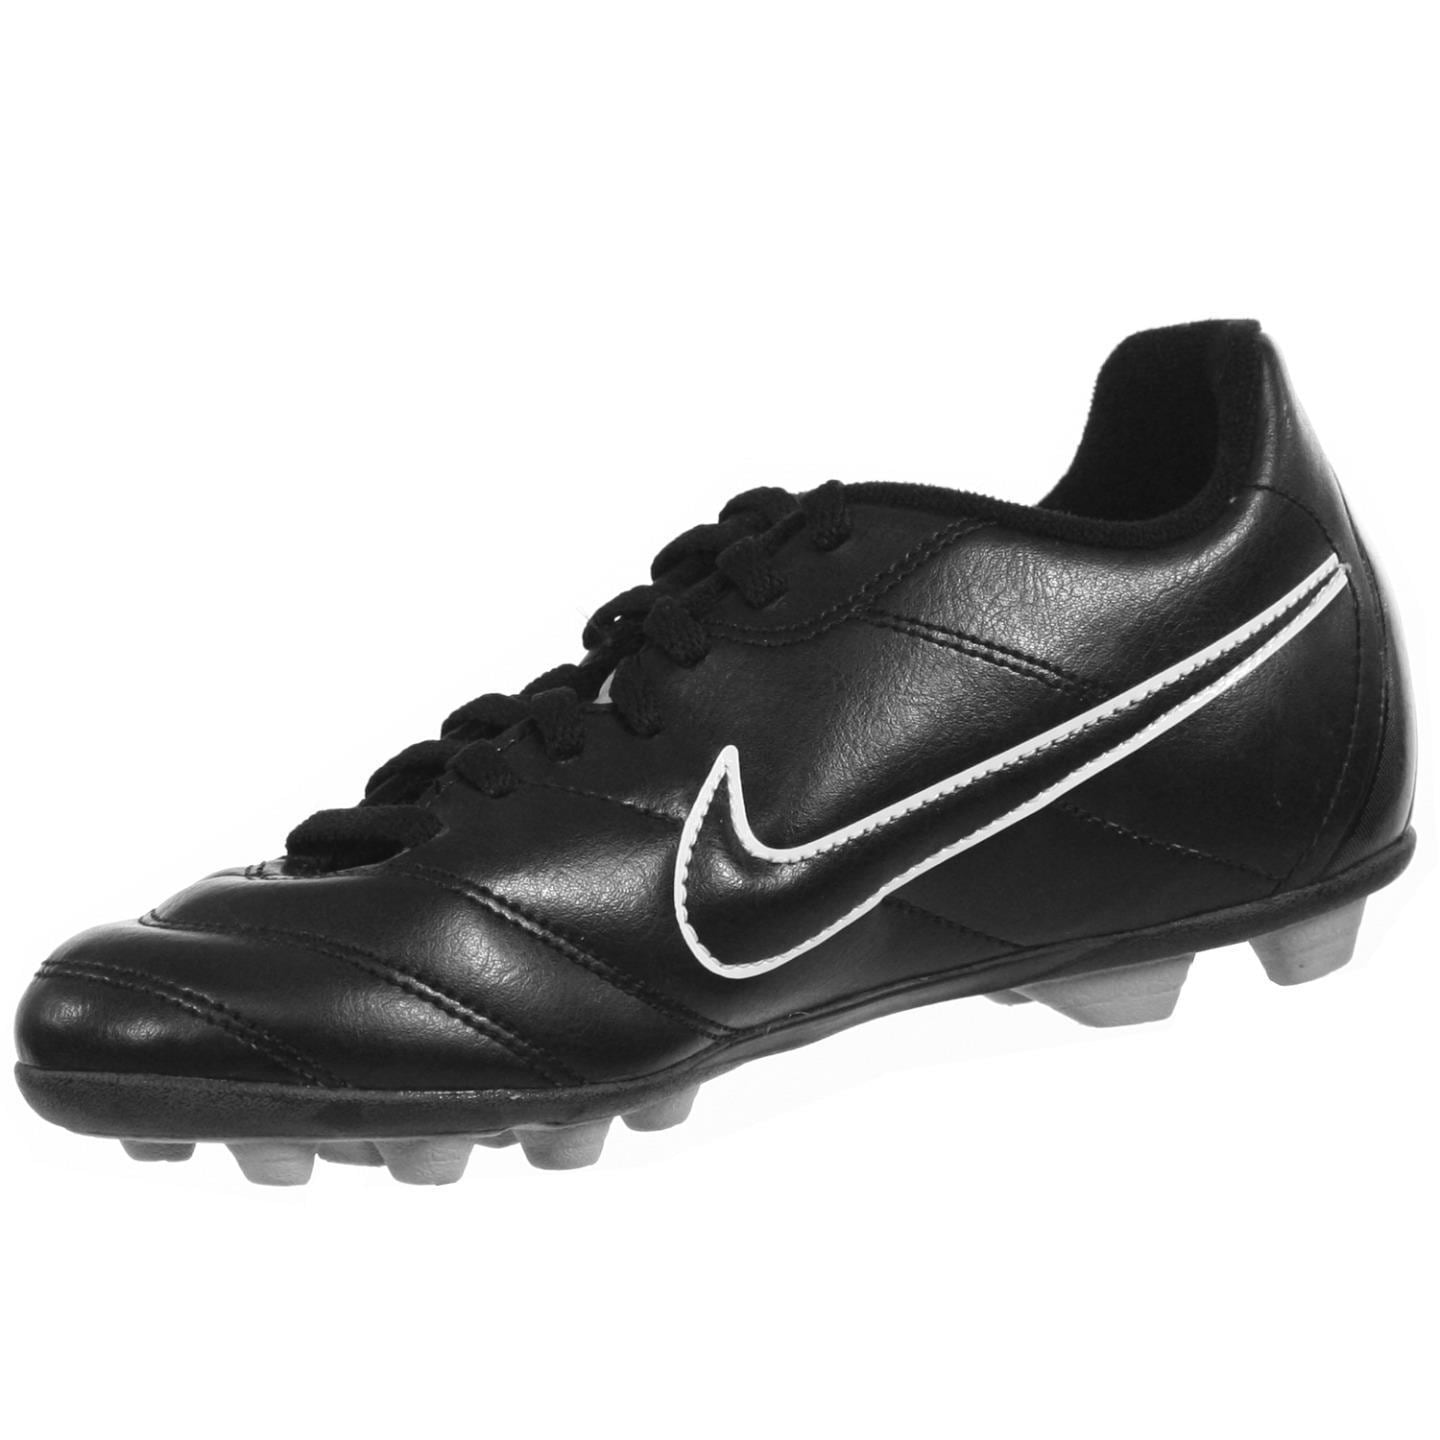 86c97d4fe550 Shop NIKE JR TIEMPO RIO INTERCHANGE FG-R Youth Soccer Cleat - Free Shipping  On Orders Over  45 - Overstock - 15341564